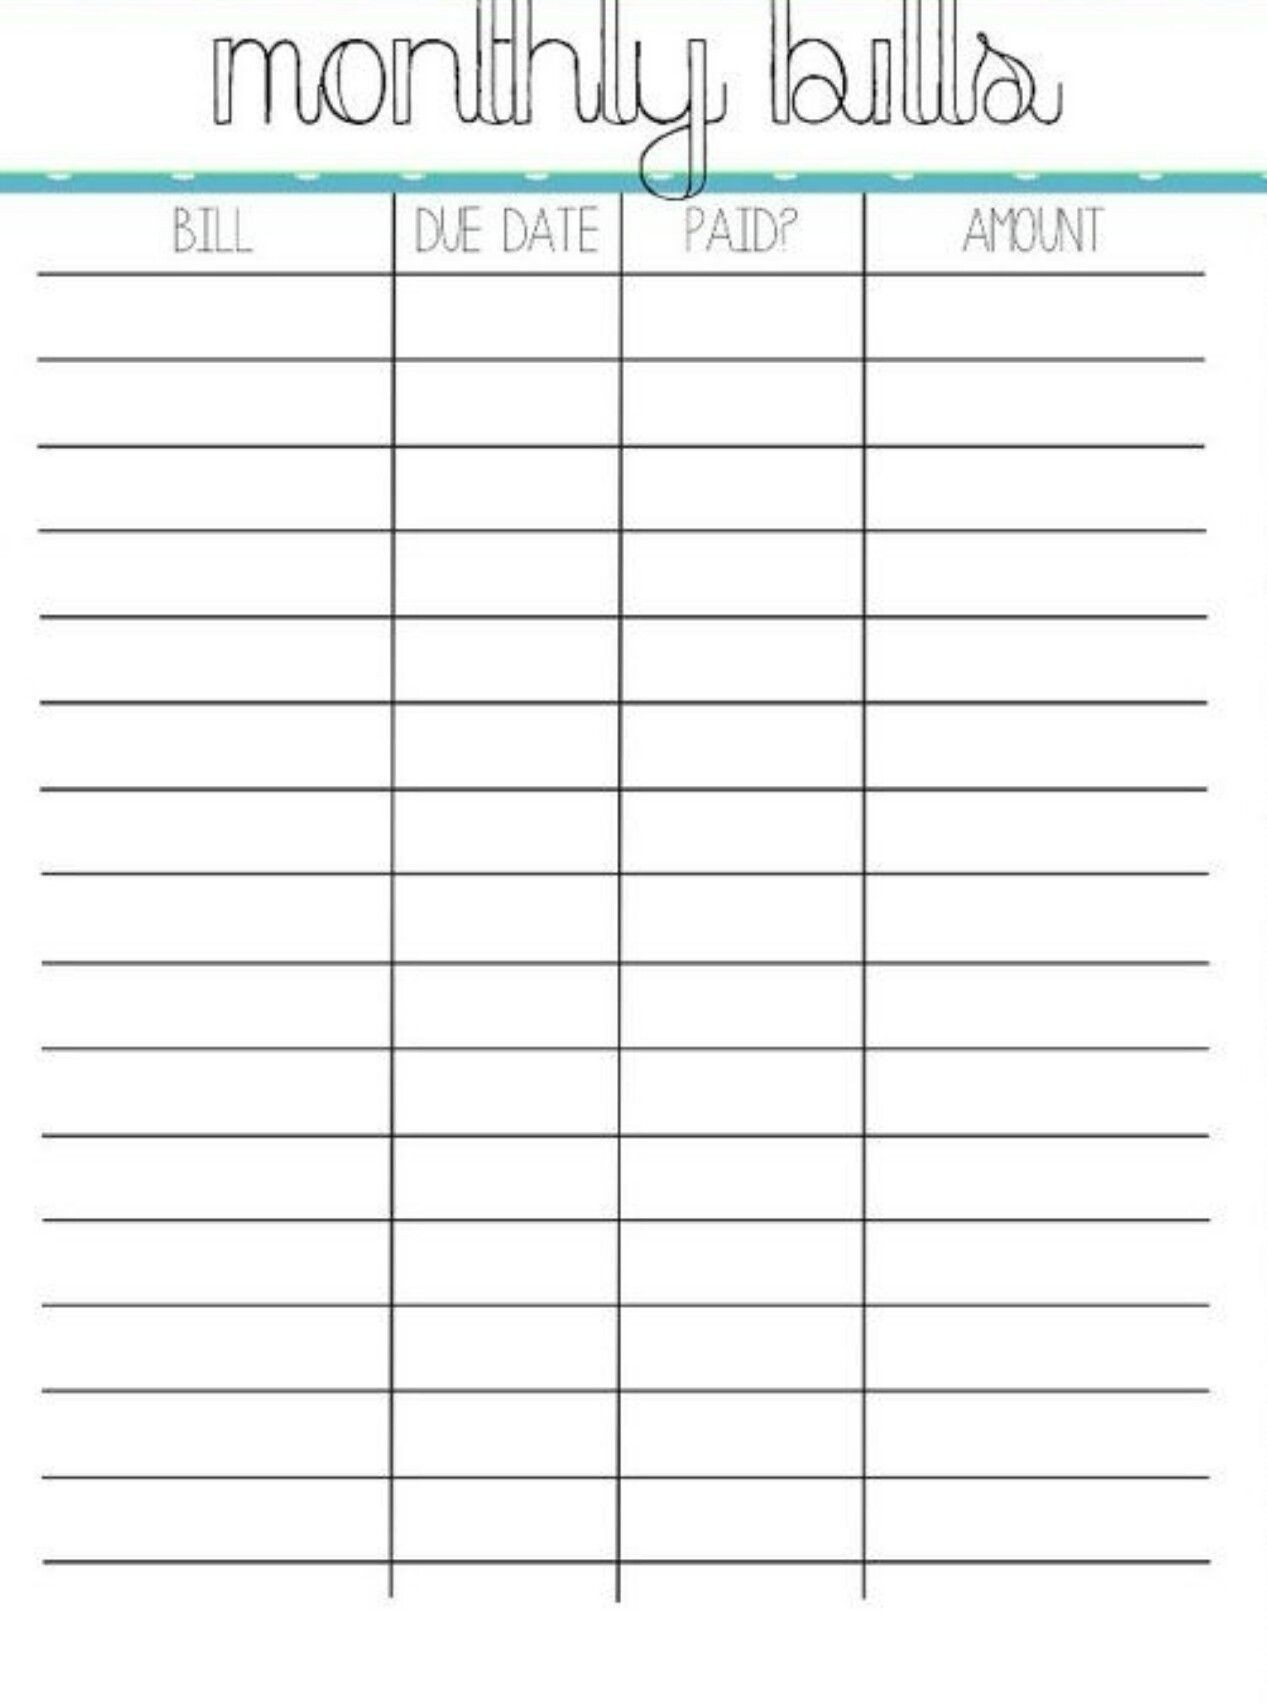 Pin By Crystal On Bills | Organizing Monthly Bills, Bill-Downloadable Monthly Bill Chart